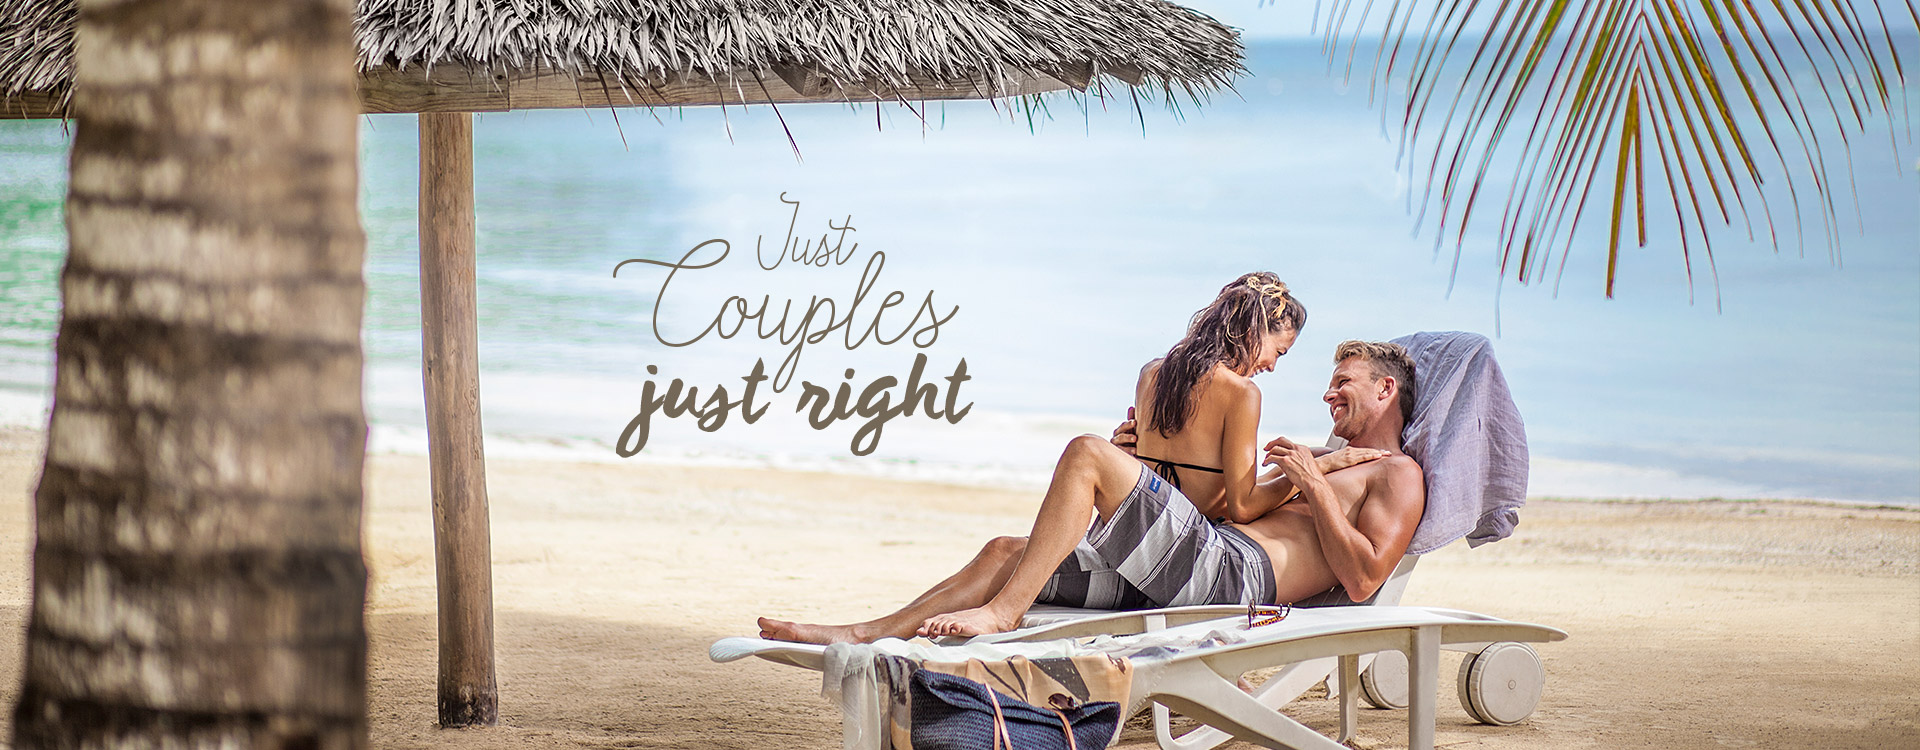 1-Couples_Main-All-Inclusive-JustCouplesJustRight copy-56d6fab358b1c.jpg